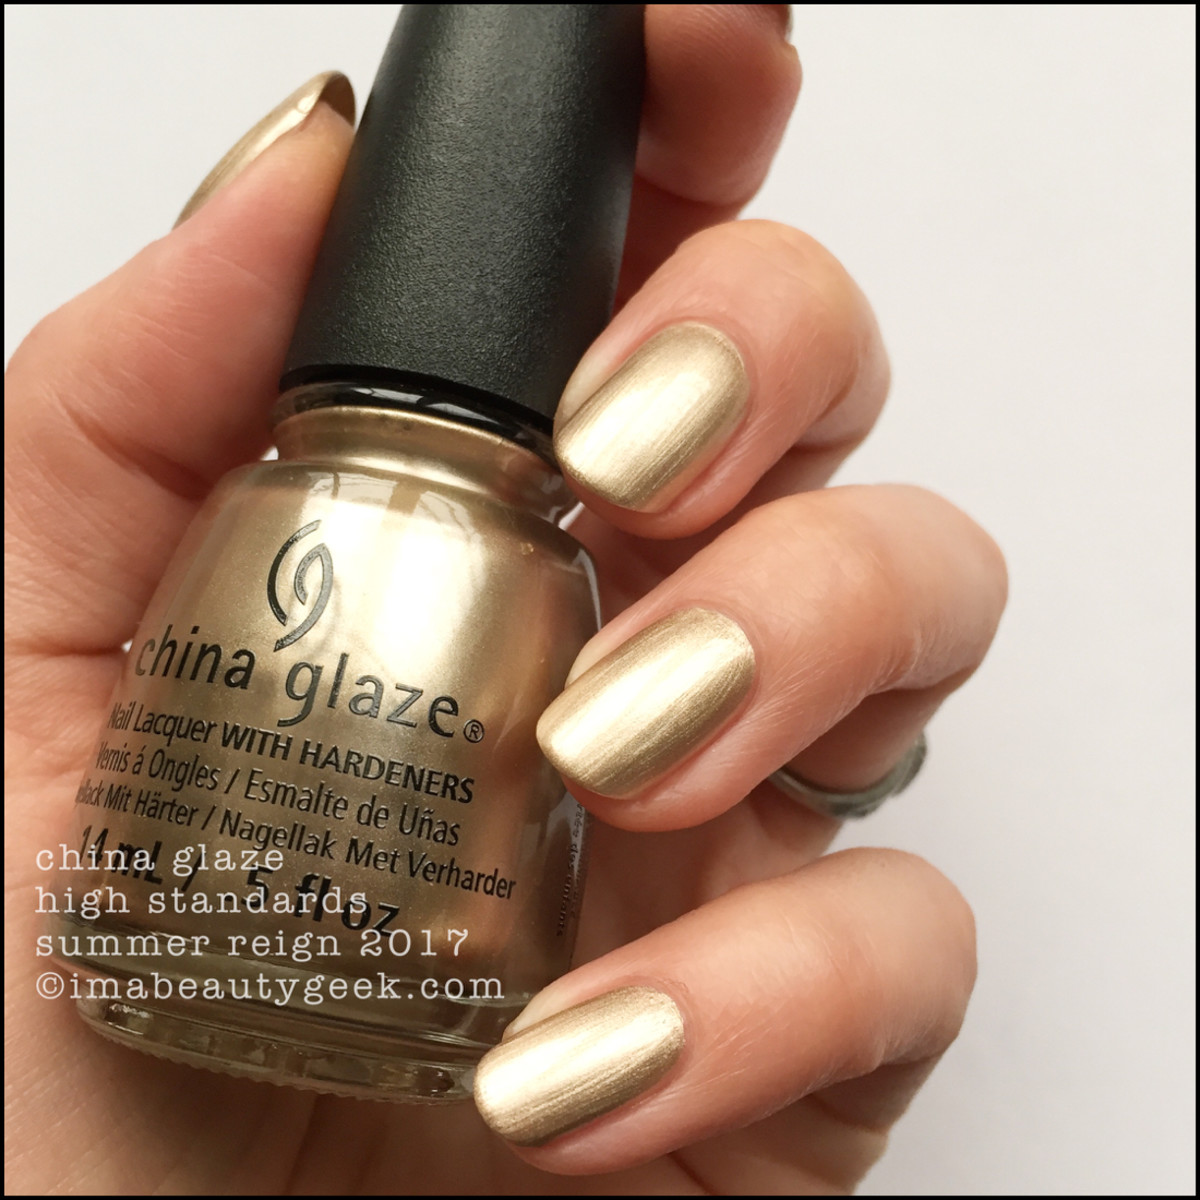 China Glaze High Standards_Summer Reign Collection